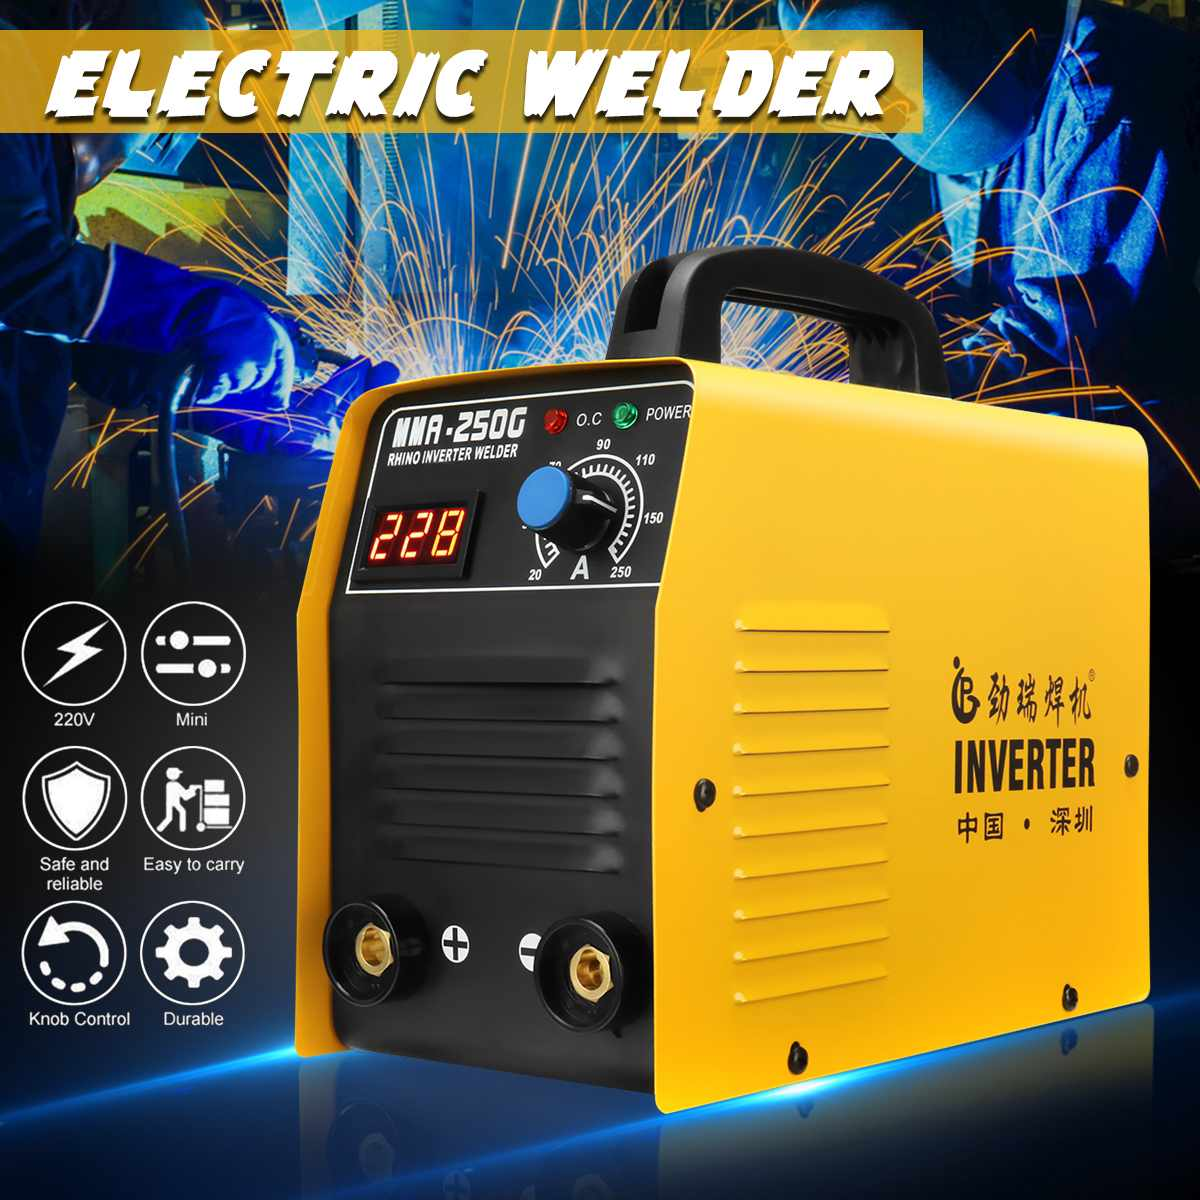 MMA-250G 220V Electric Arc Welders  IGBT Inverter MMA ARC Welding Soldering Machine Welding Equipment For Home Beginner